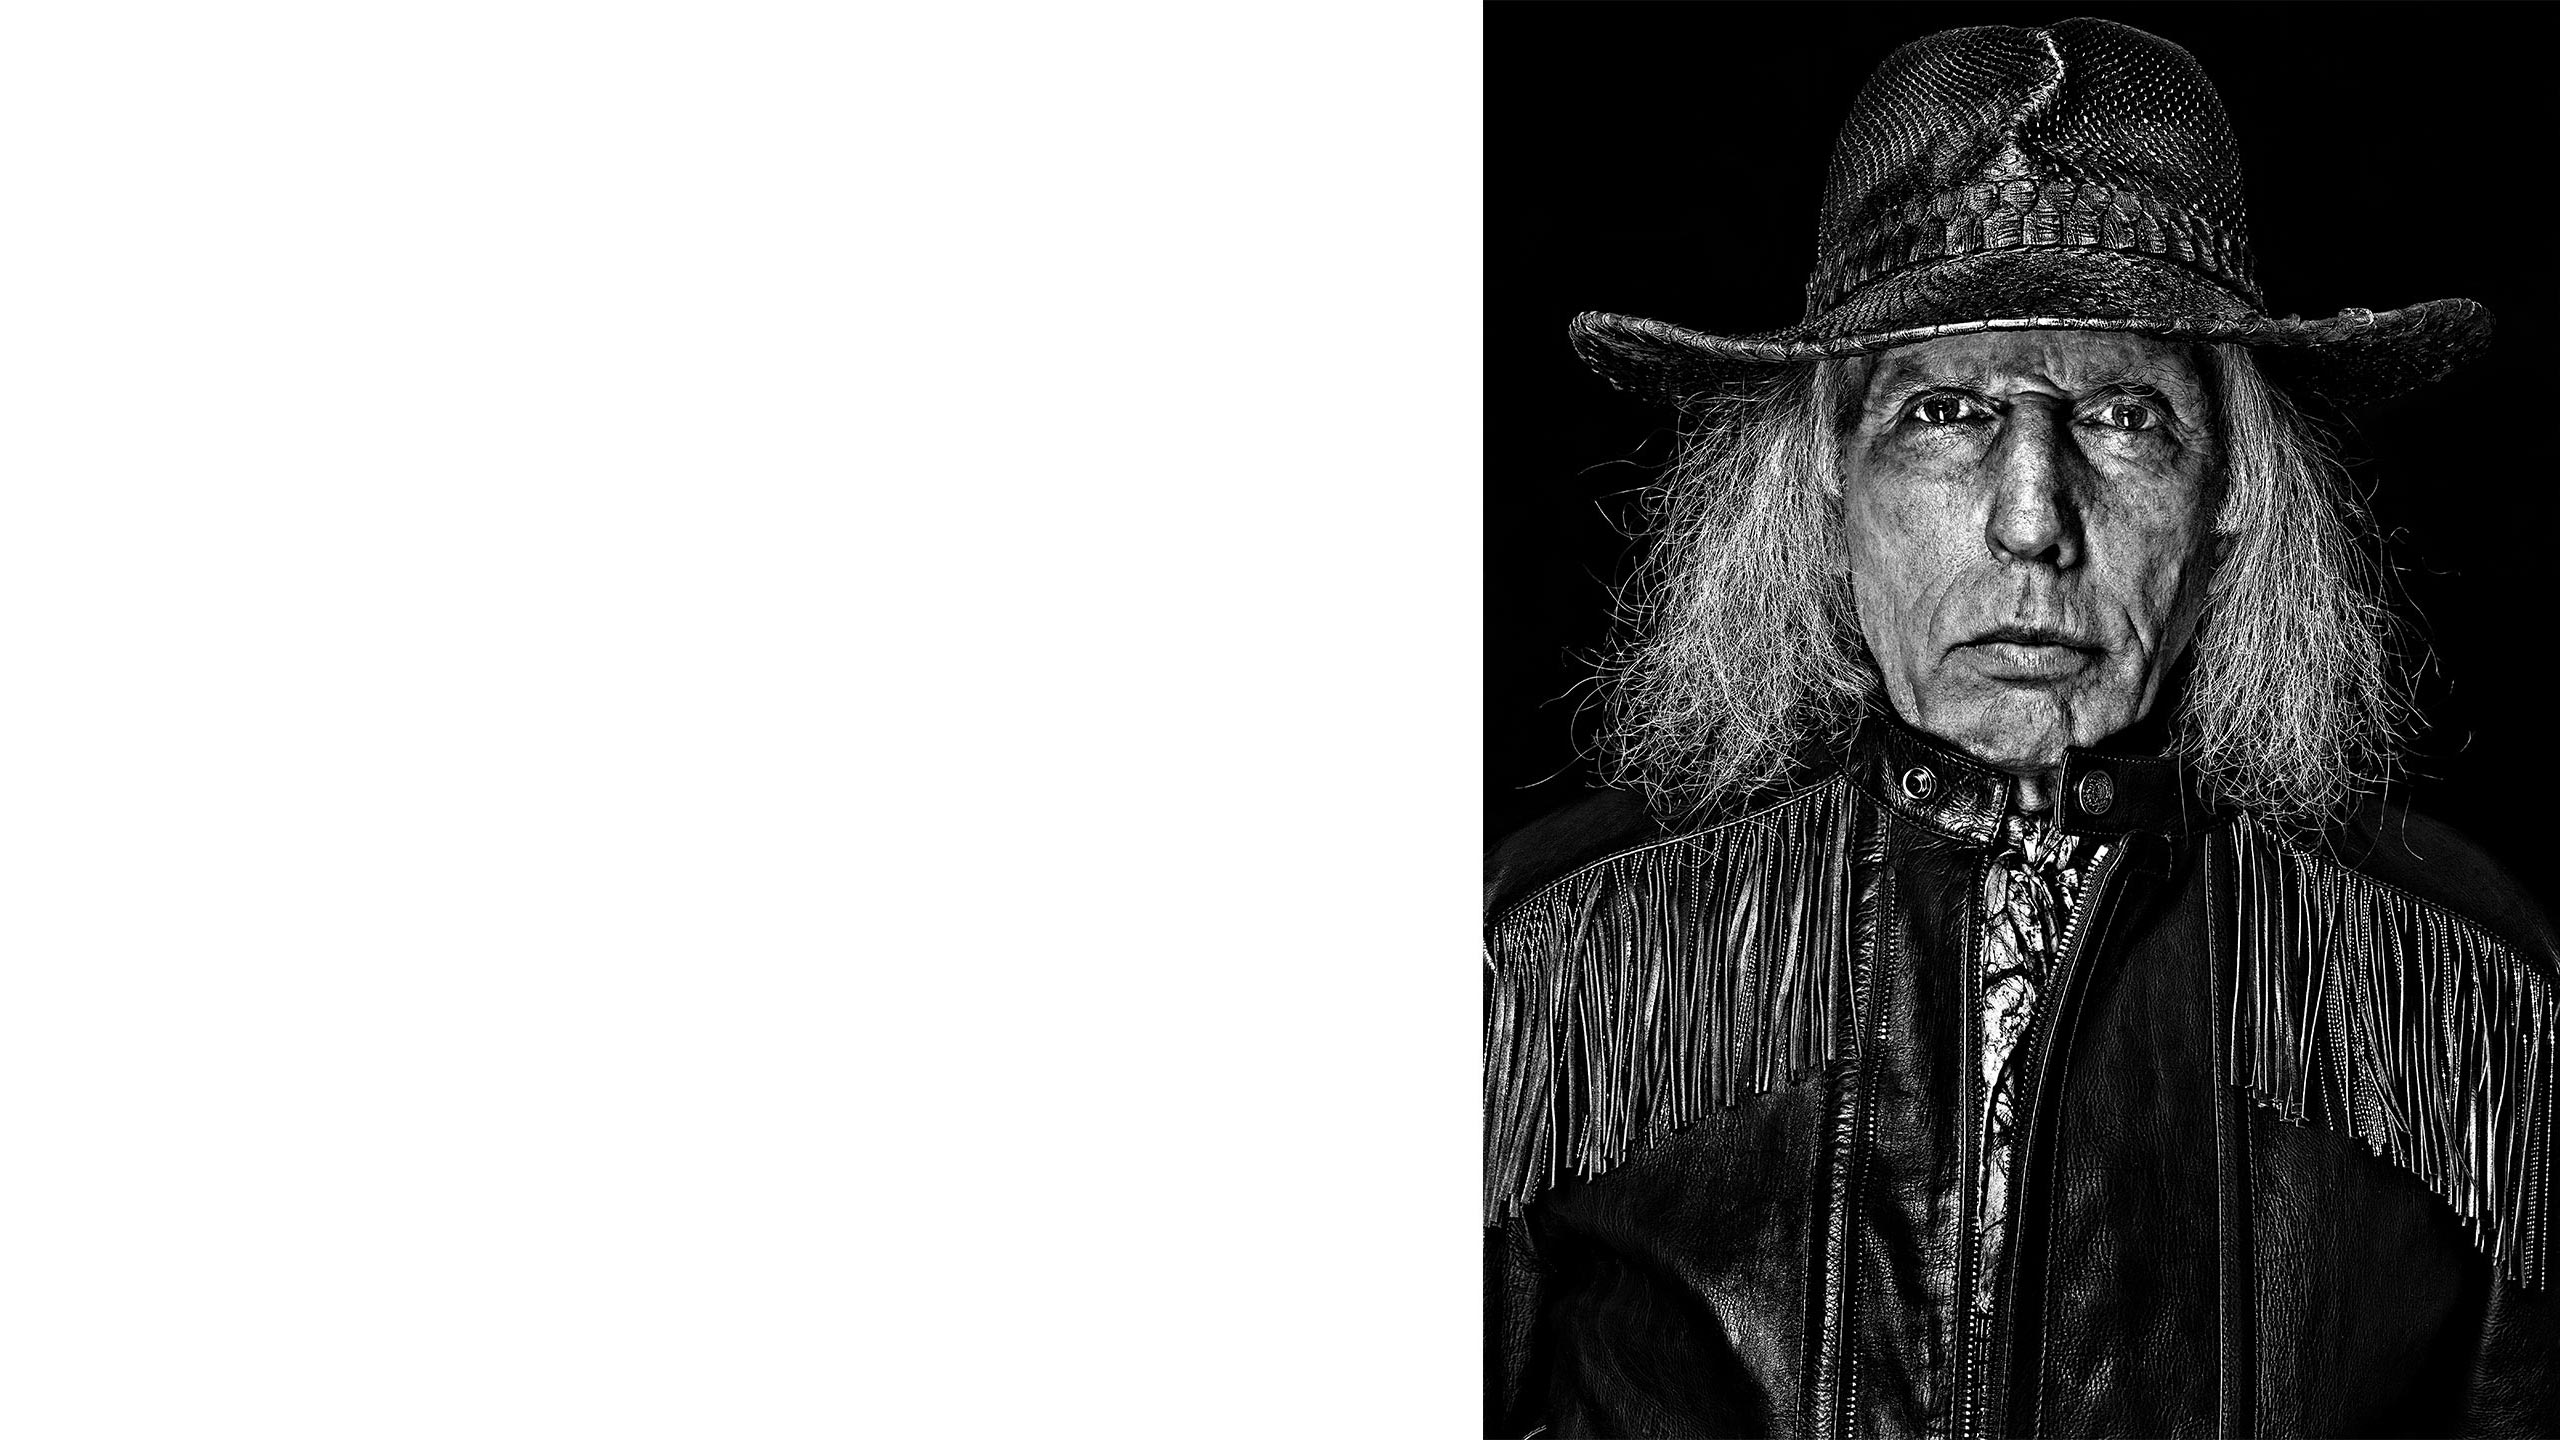 JAMES_GOLDSTEIN_BY_PATRIZIO_DI_RENZO_6